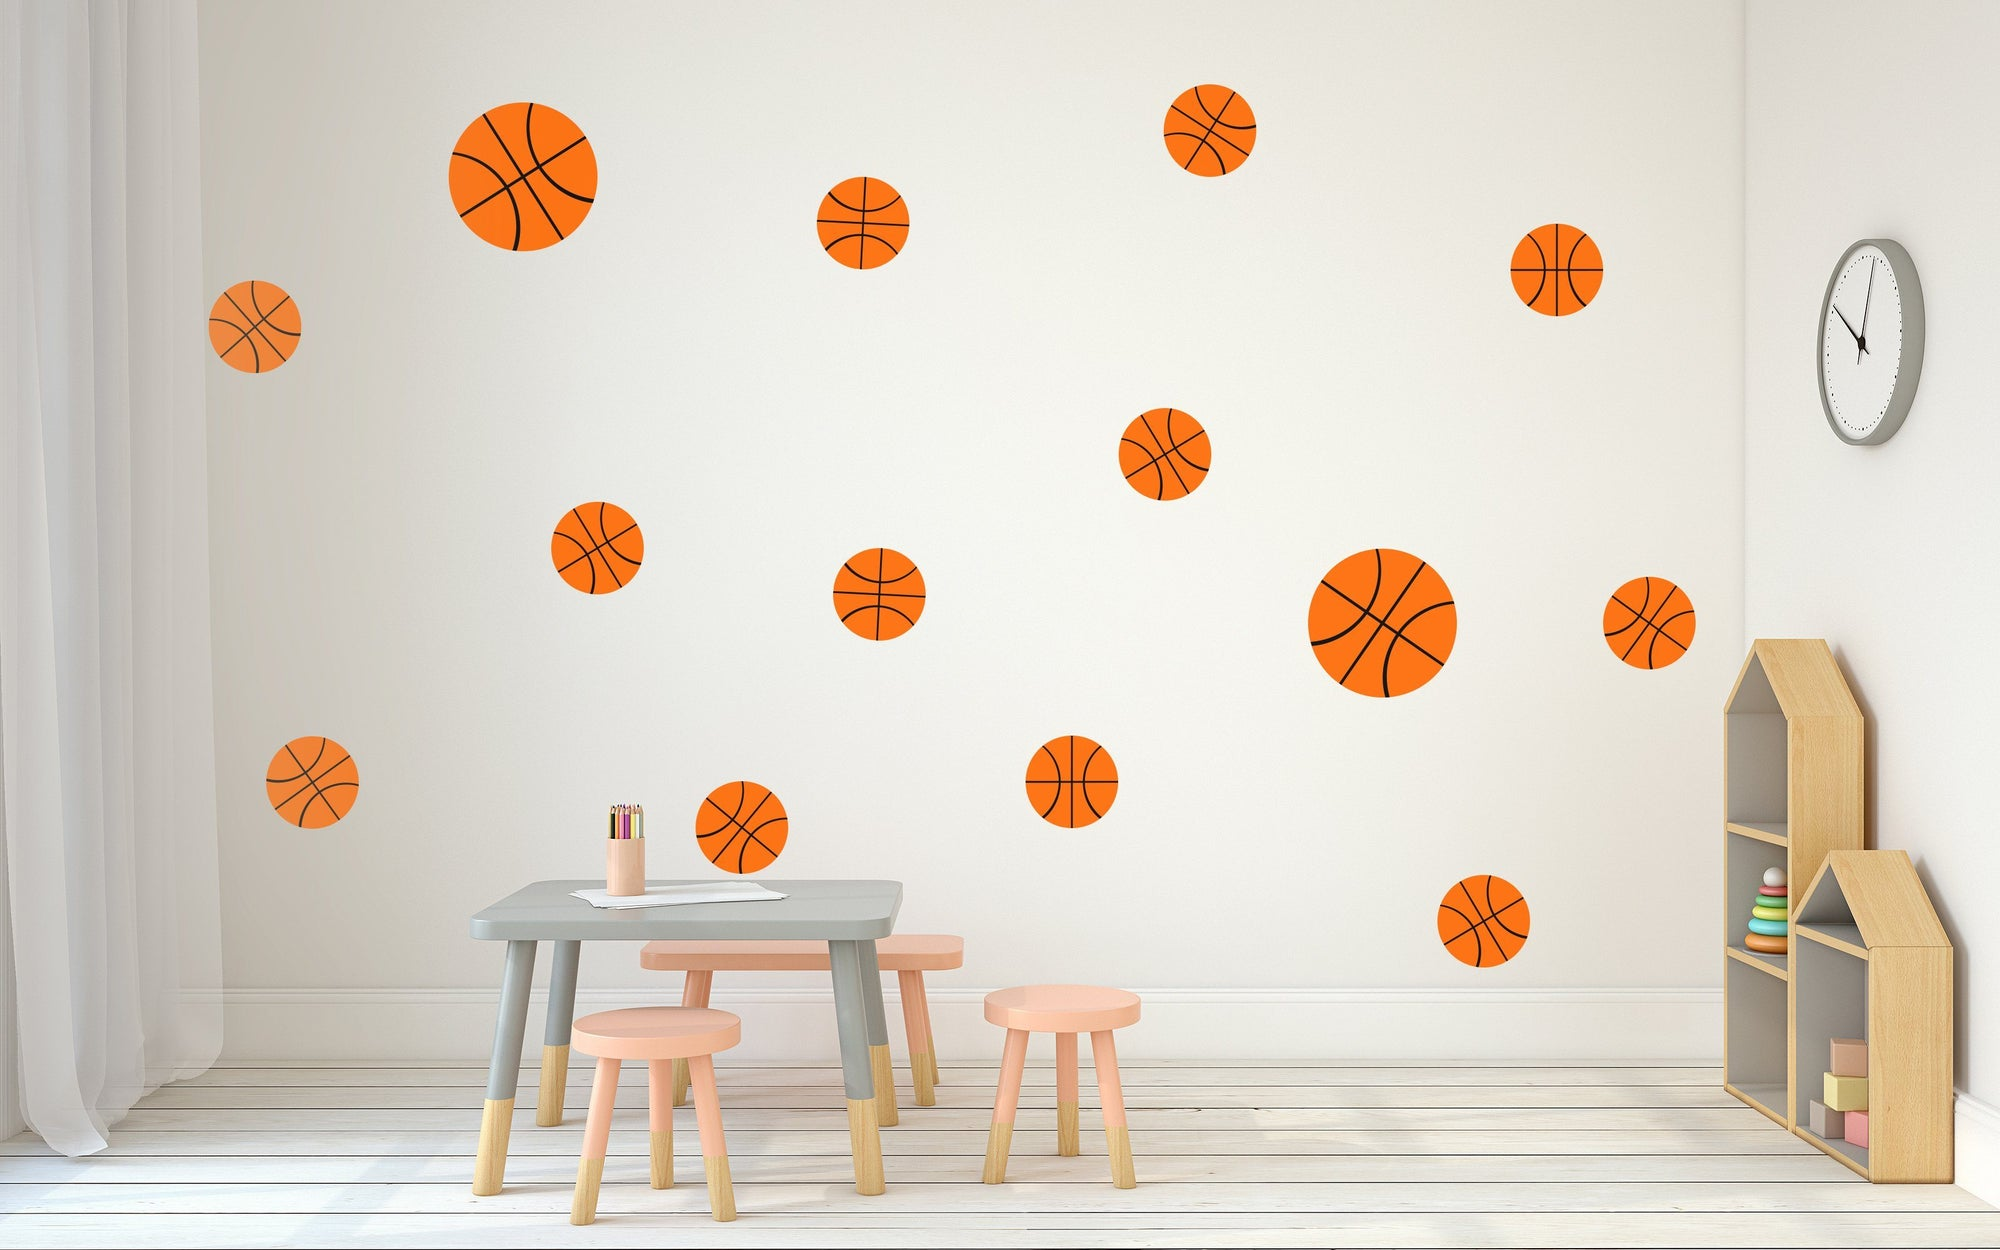 Basketball Nursery Wall Art - Vinyl Wall Decals For Nurseries, Children's Rooms, And Home Decor